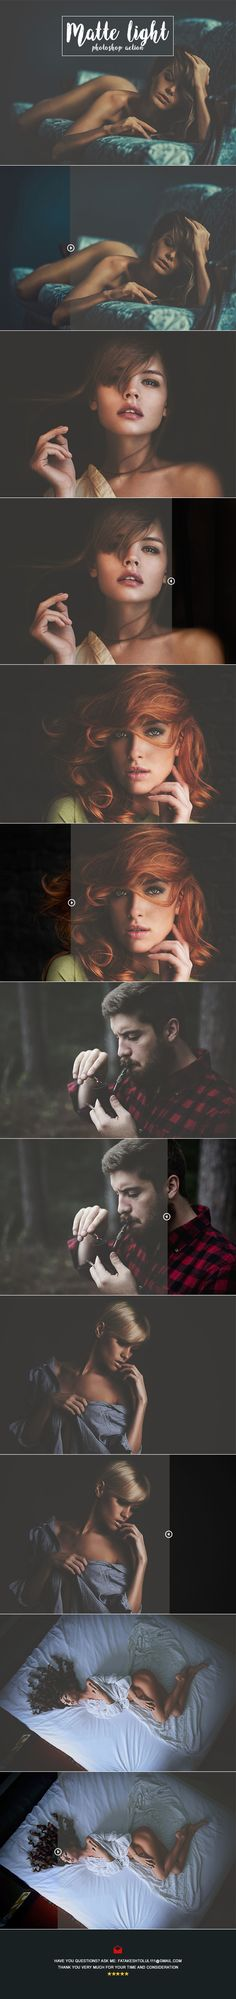 Real Matte Light Photoshop Action — Photoshop ATN #retouching #matte • Available here → https://graphicriver.net/item/real-matte-light-photoshop-action/19362937?ref=pxcr